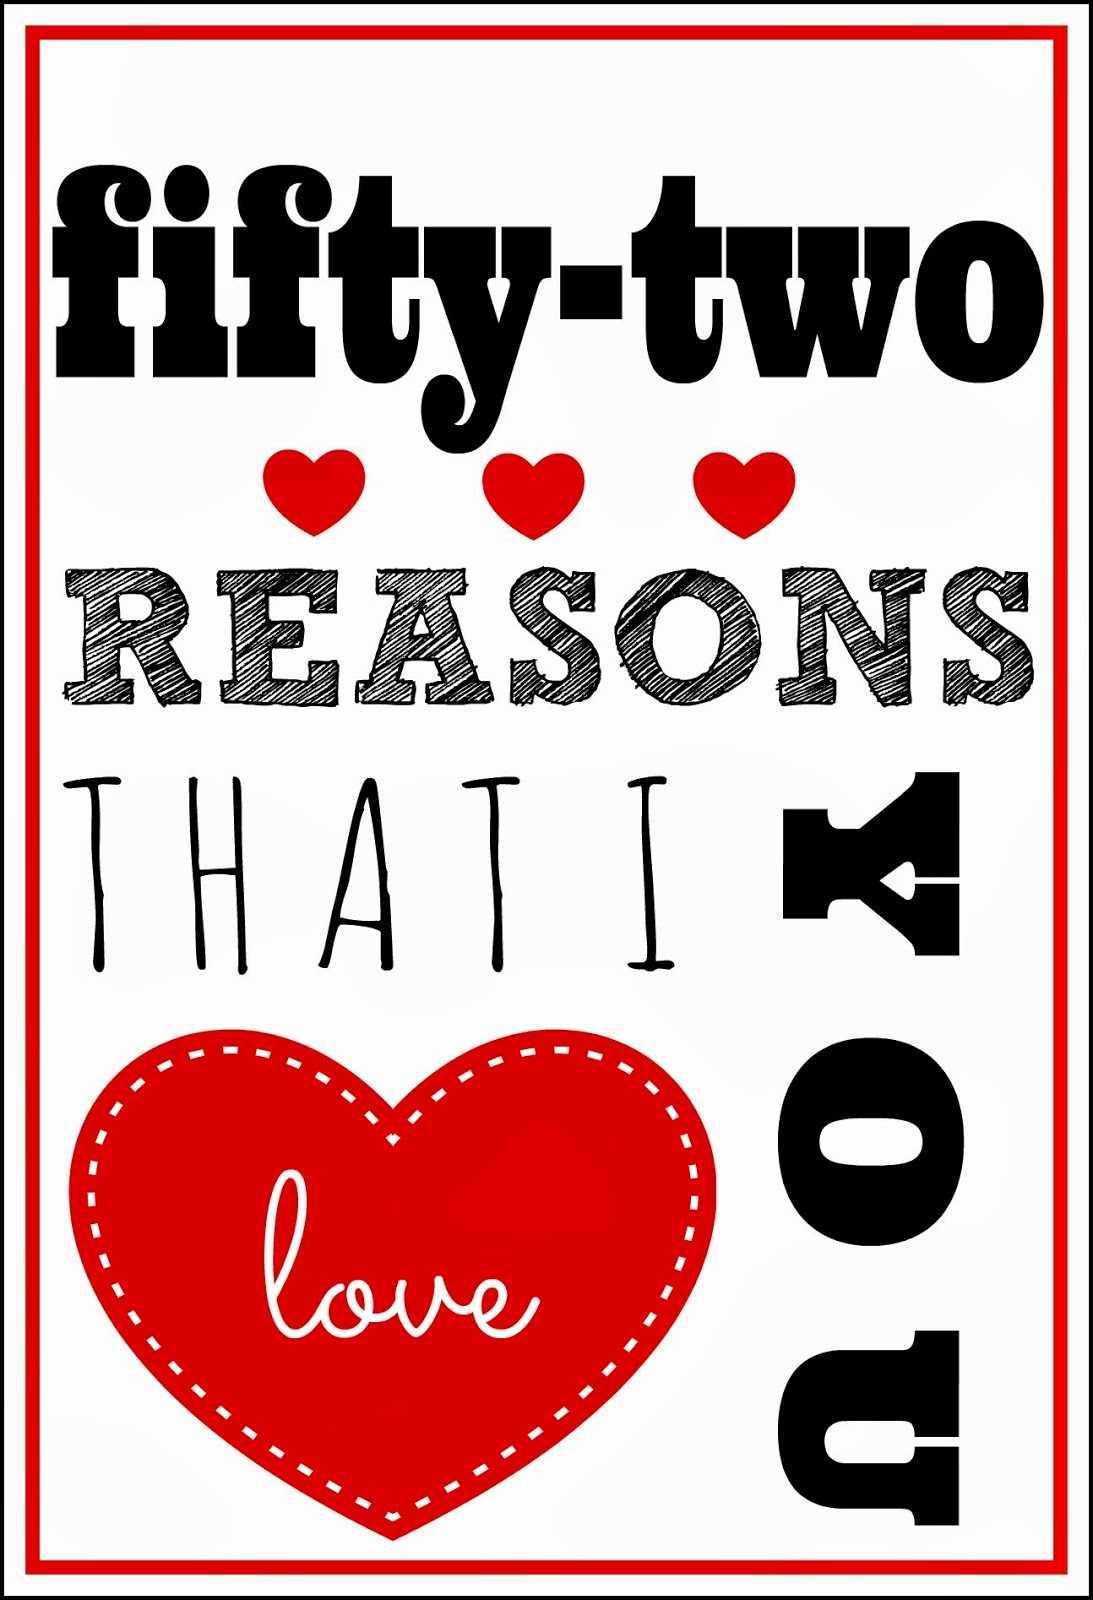 52 Reasons I Love You Template Free ] - 1000 Ideas About 52 Inside 52 Reasons Why I Love You Cards Templates Free